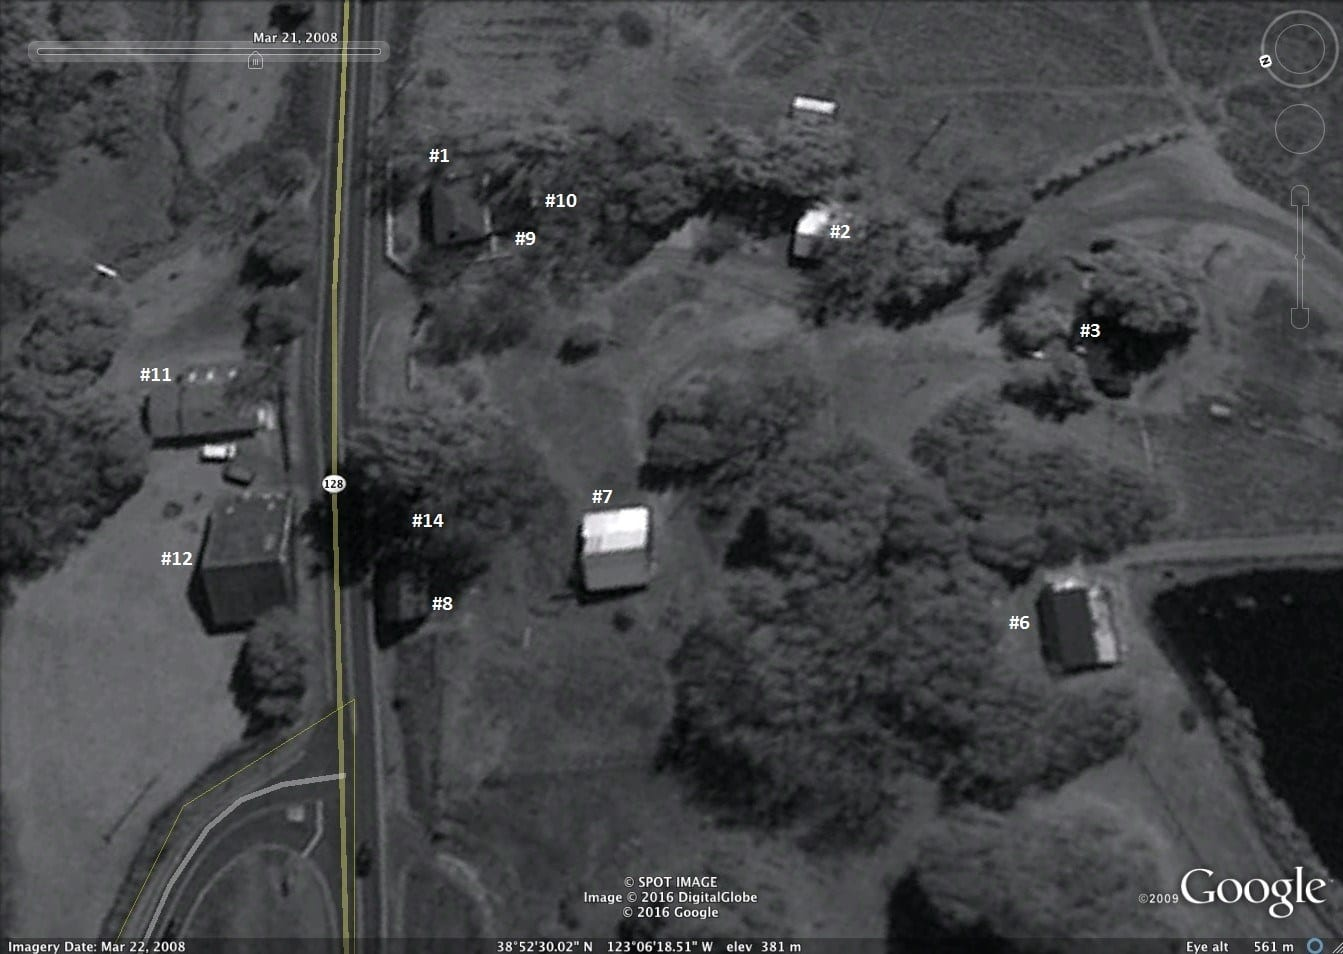 7a. Google Earth numbered 1